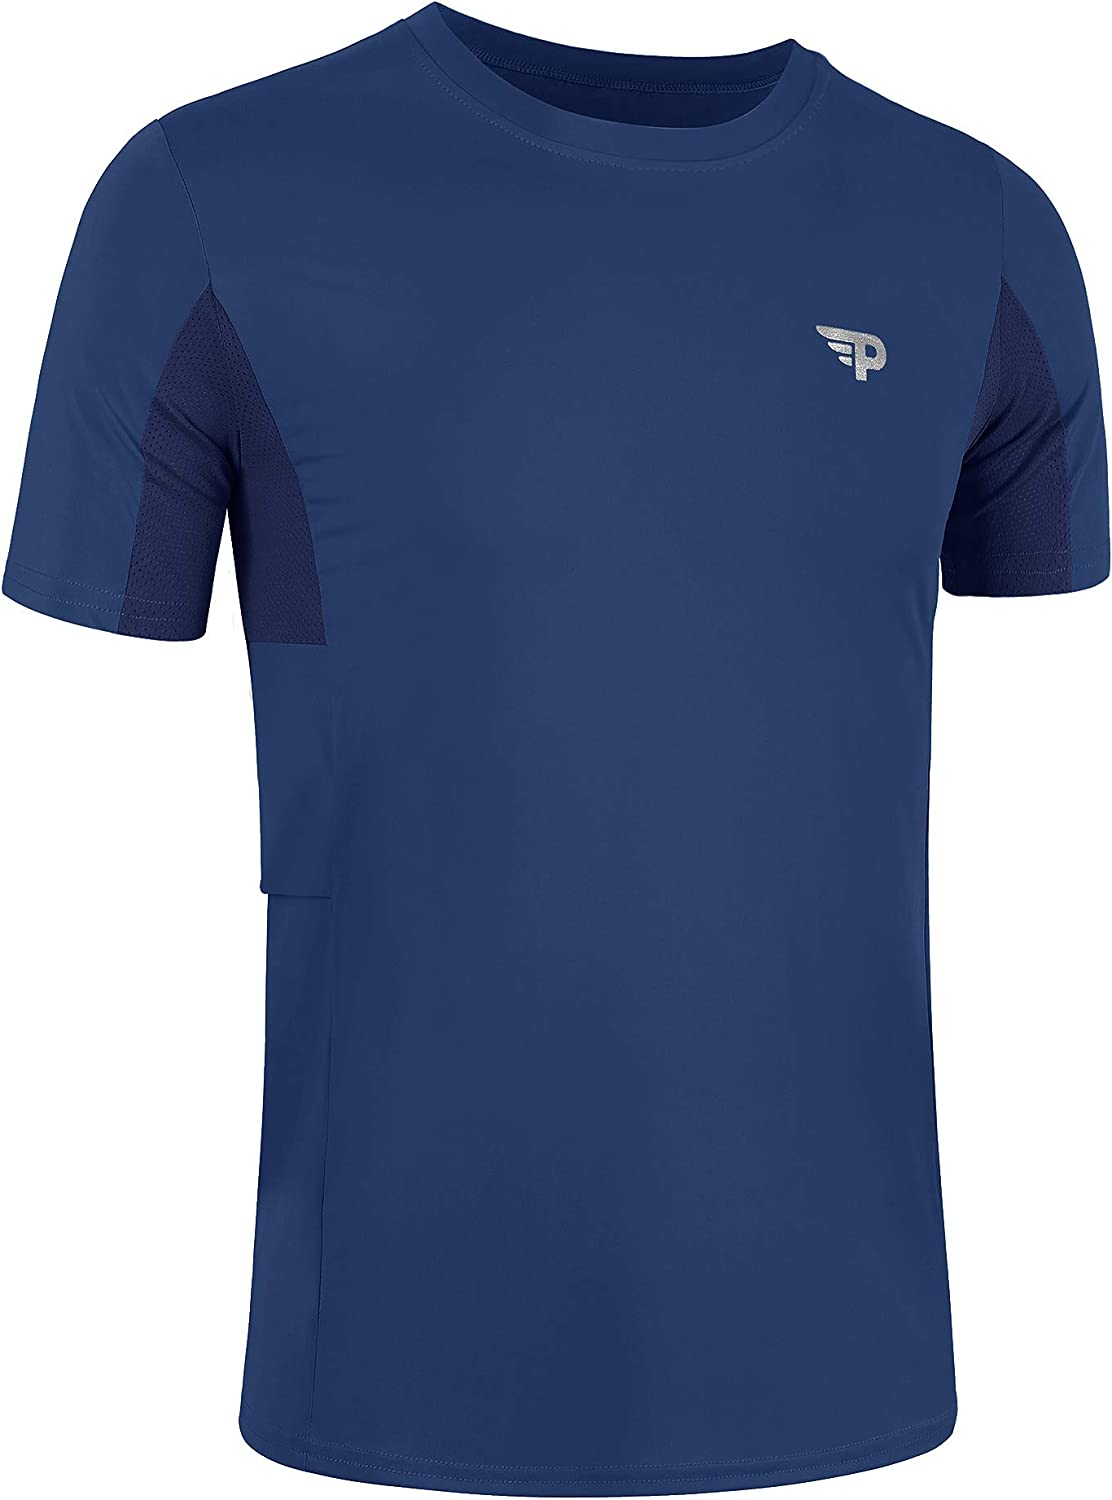 poriff Men's Summer Quick-Dry Sun Protection Short Sleeve T Shirts Portable Athletic Tops